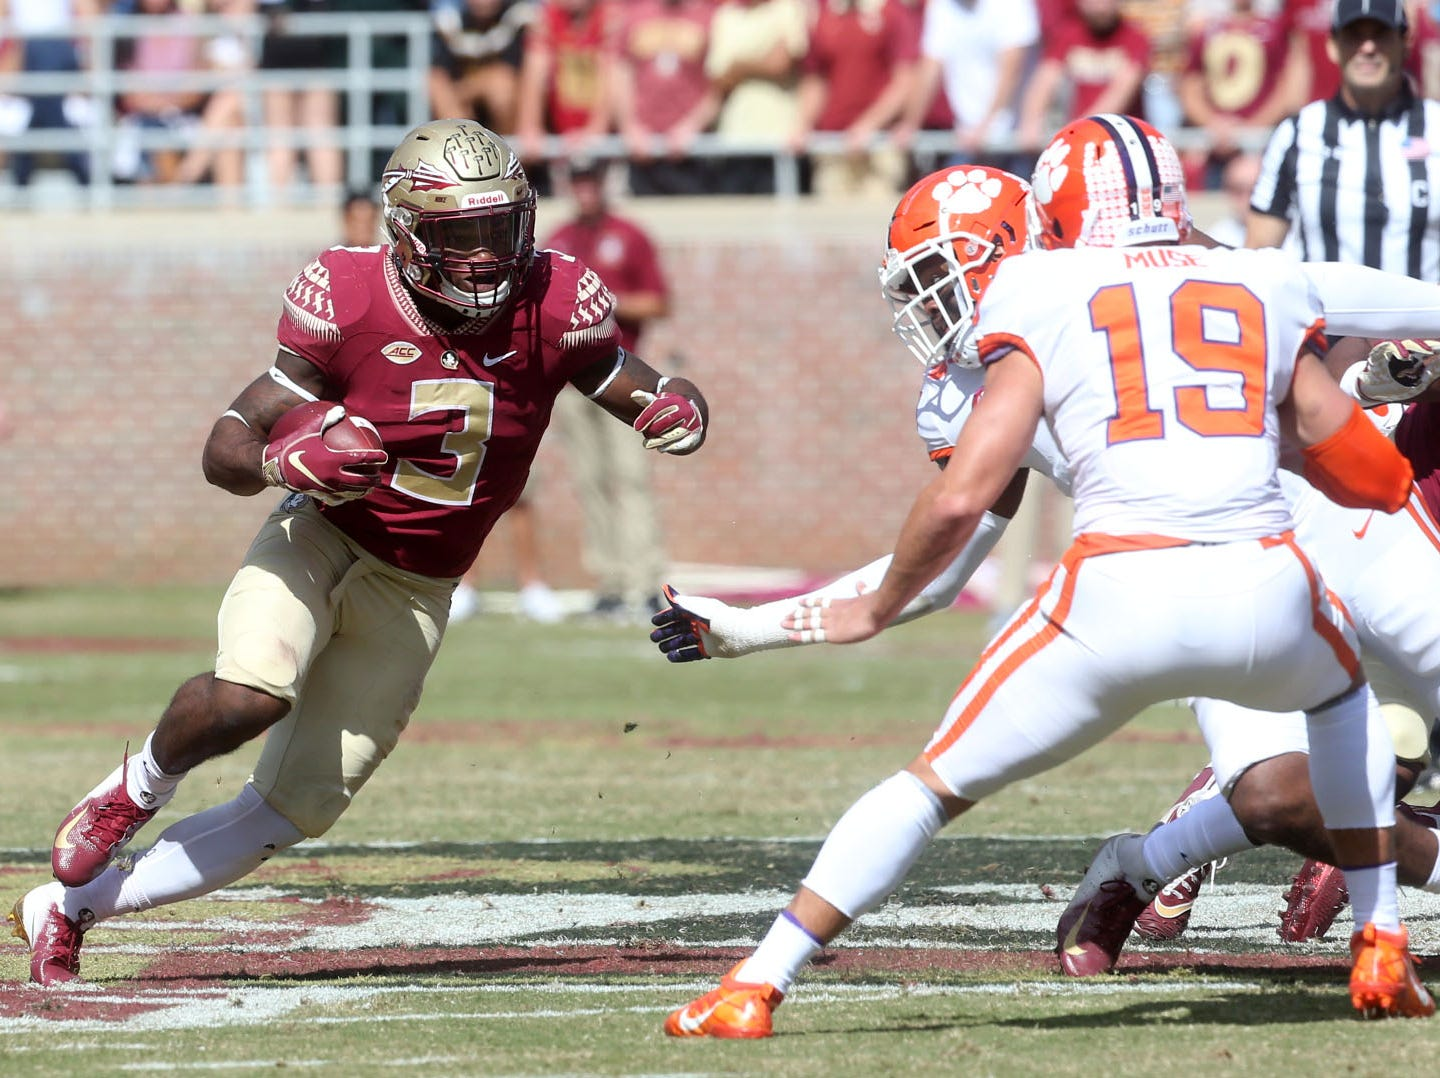 Florida State Seminoles running back Cam Akers (3) runs the ball as the Florida State Seminoles take on the Clemson Tigers in college football at Doak S. Campbell Stadium on Saturday, Oct. 27, 2018.